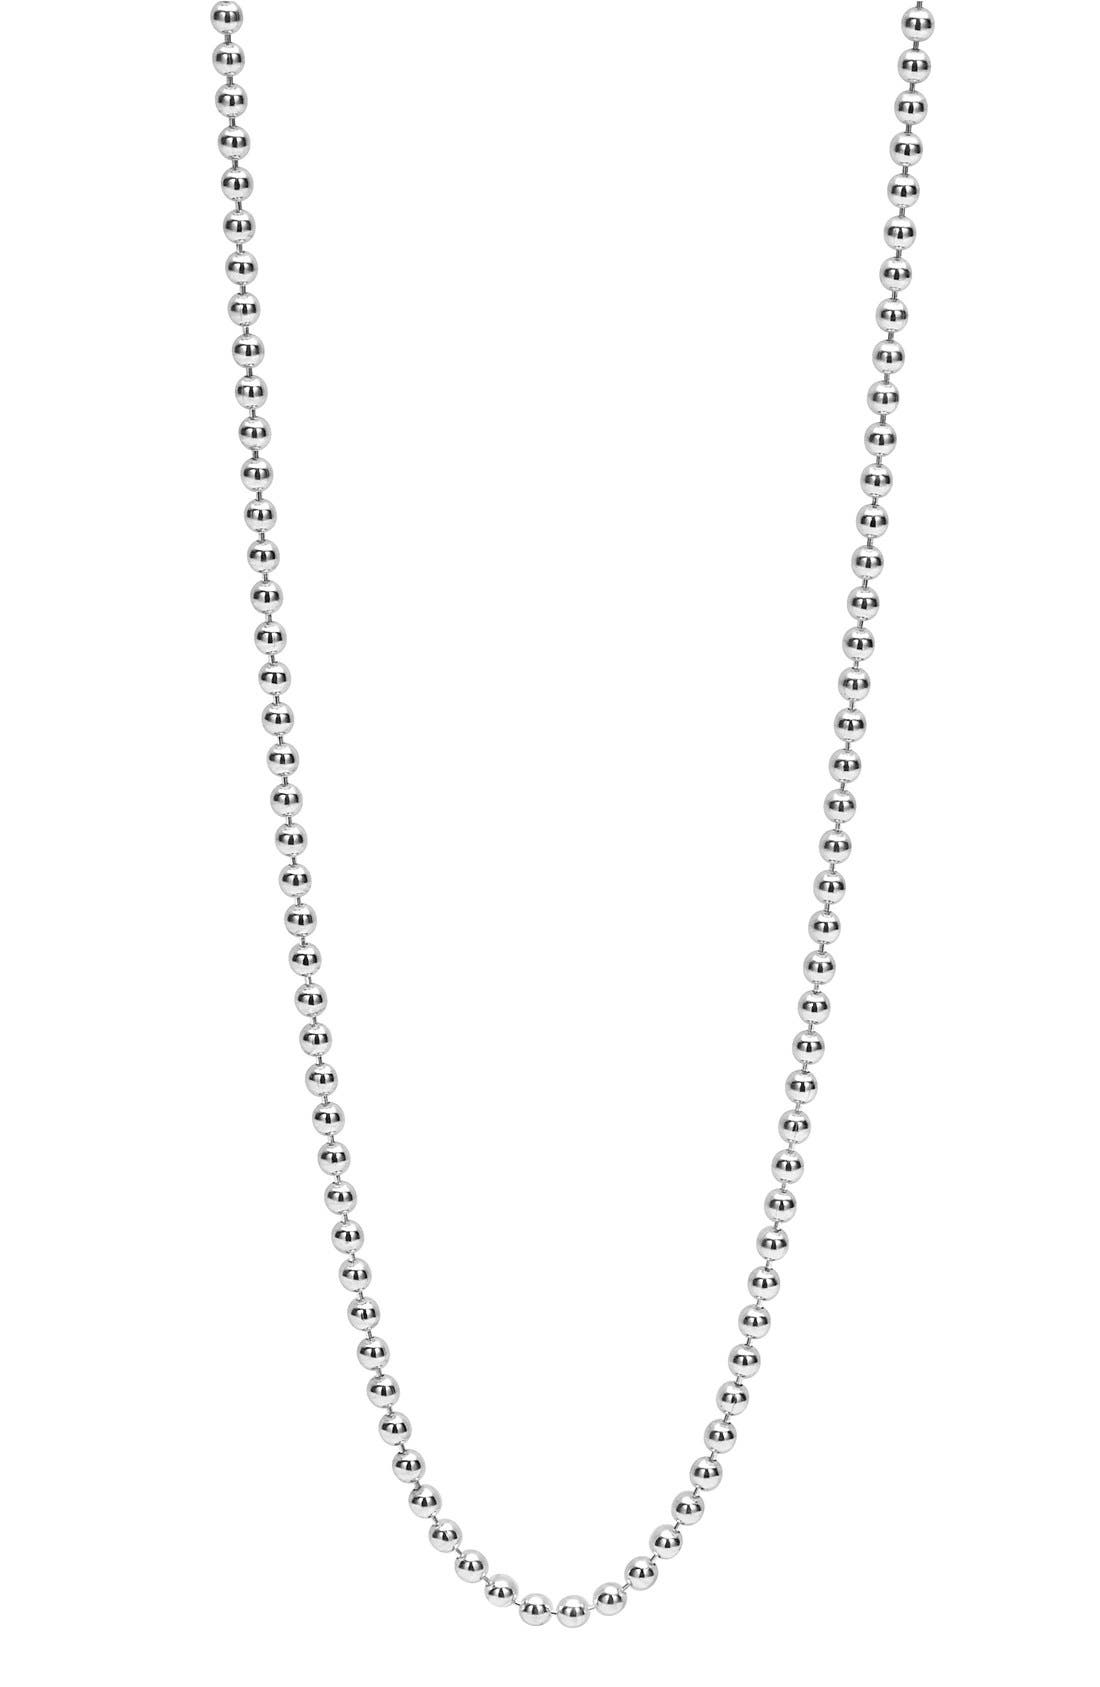 Alternate Image 1 Selected - LAGOS 'Beloved' Ball Chain Necklace